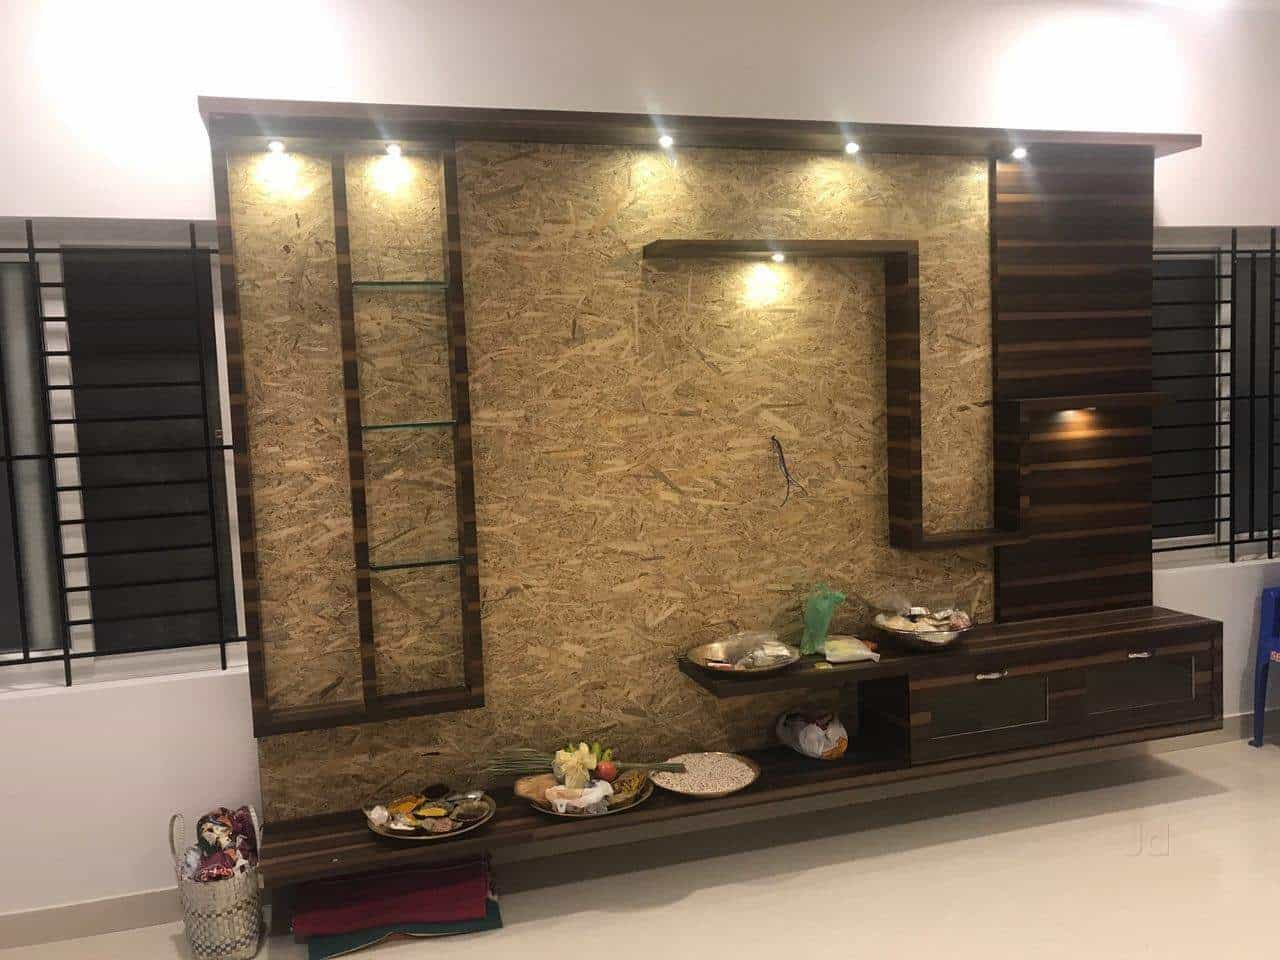 india ideas hyderabad for coolest spectacular your remodel with inspiration designers in home design interior